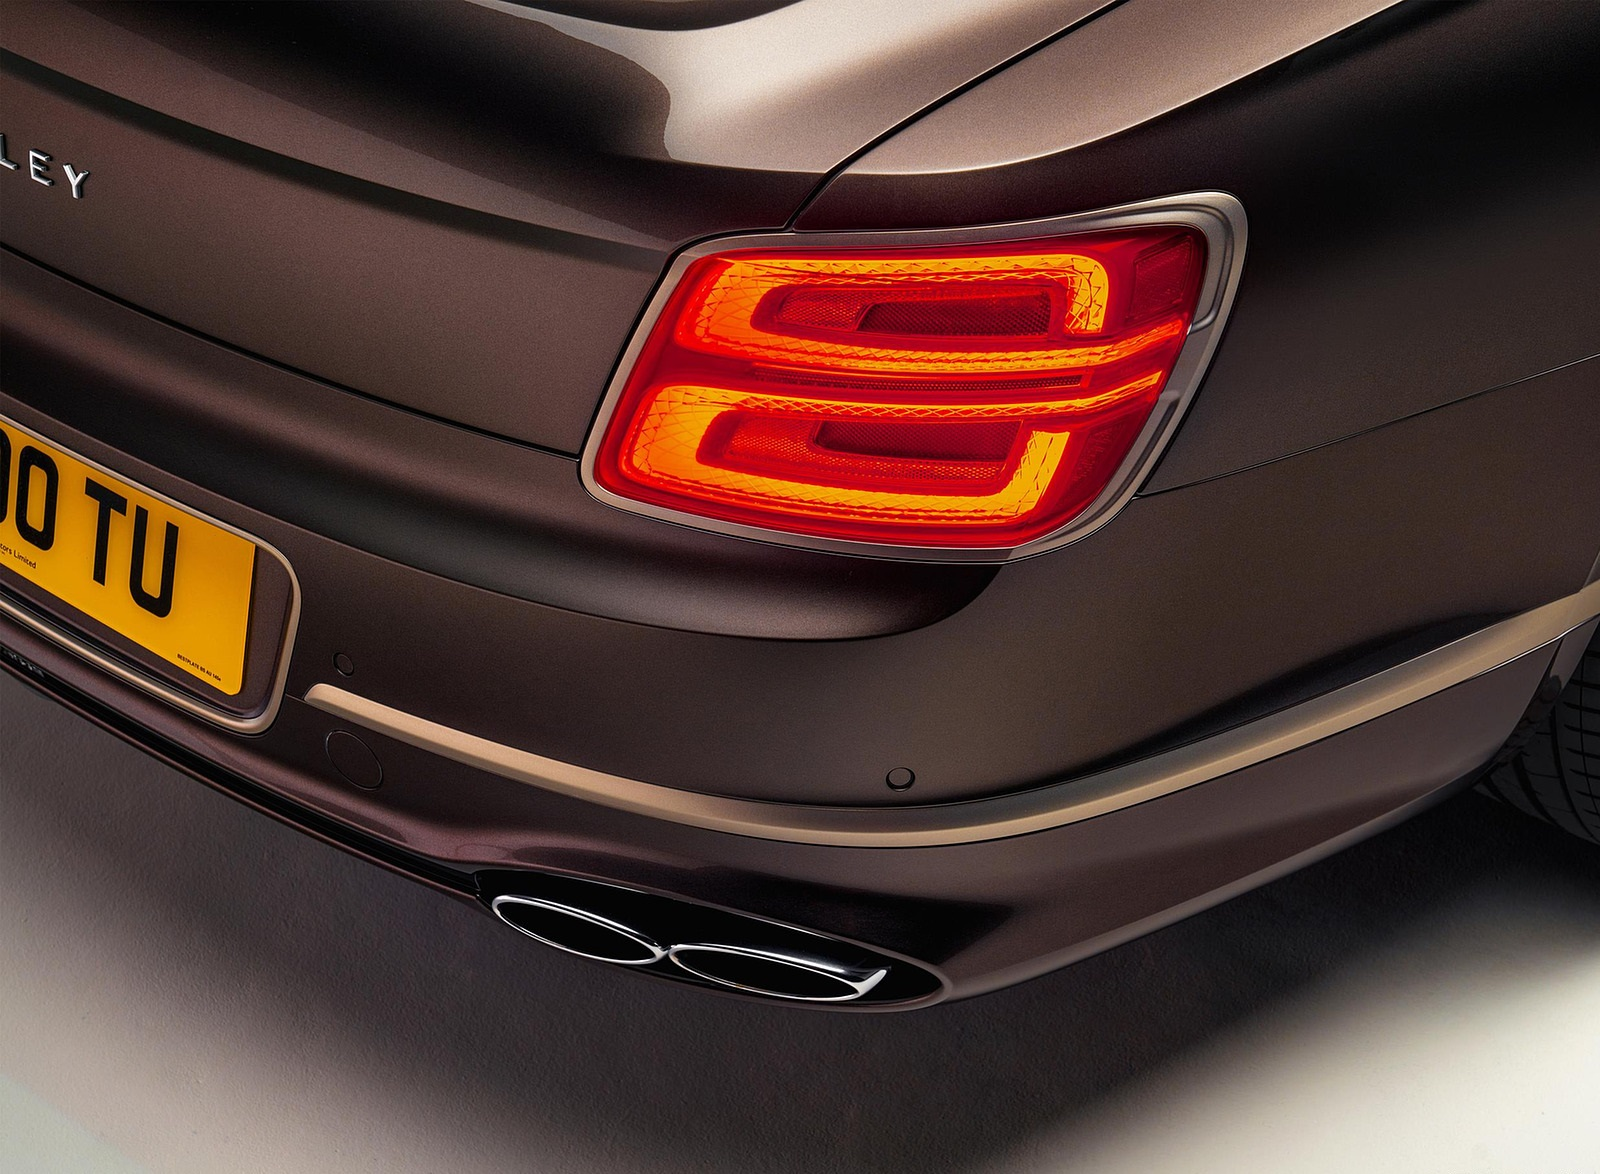 2022 Bentley Flying Spur Hybrid Odyssean Edition Tail Light Wallpapers (5)